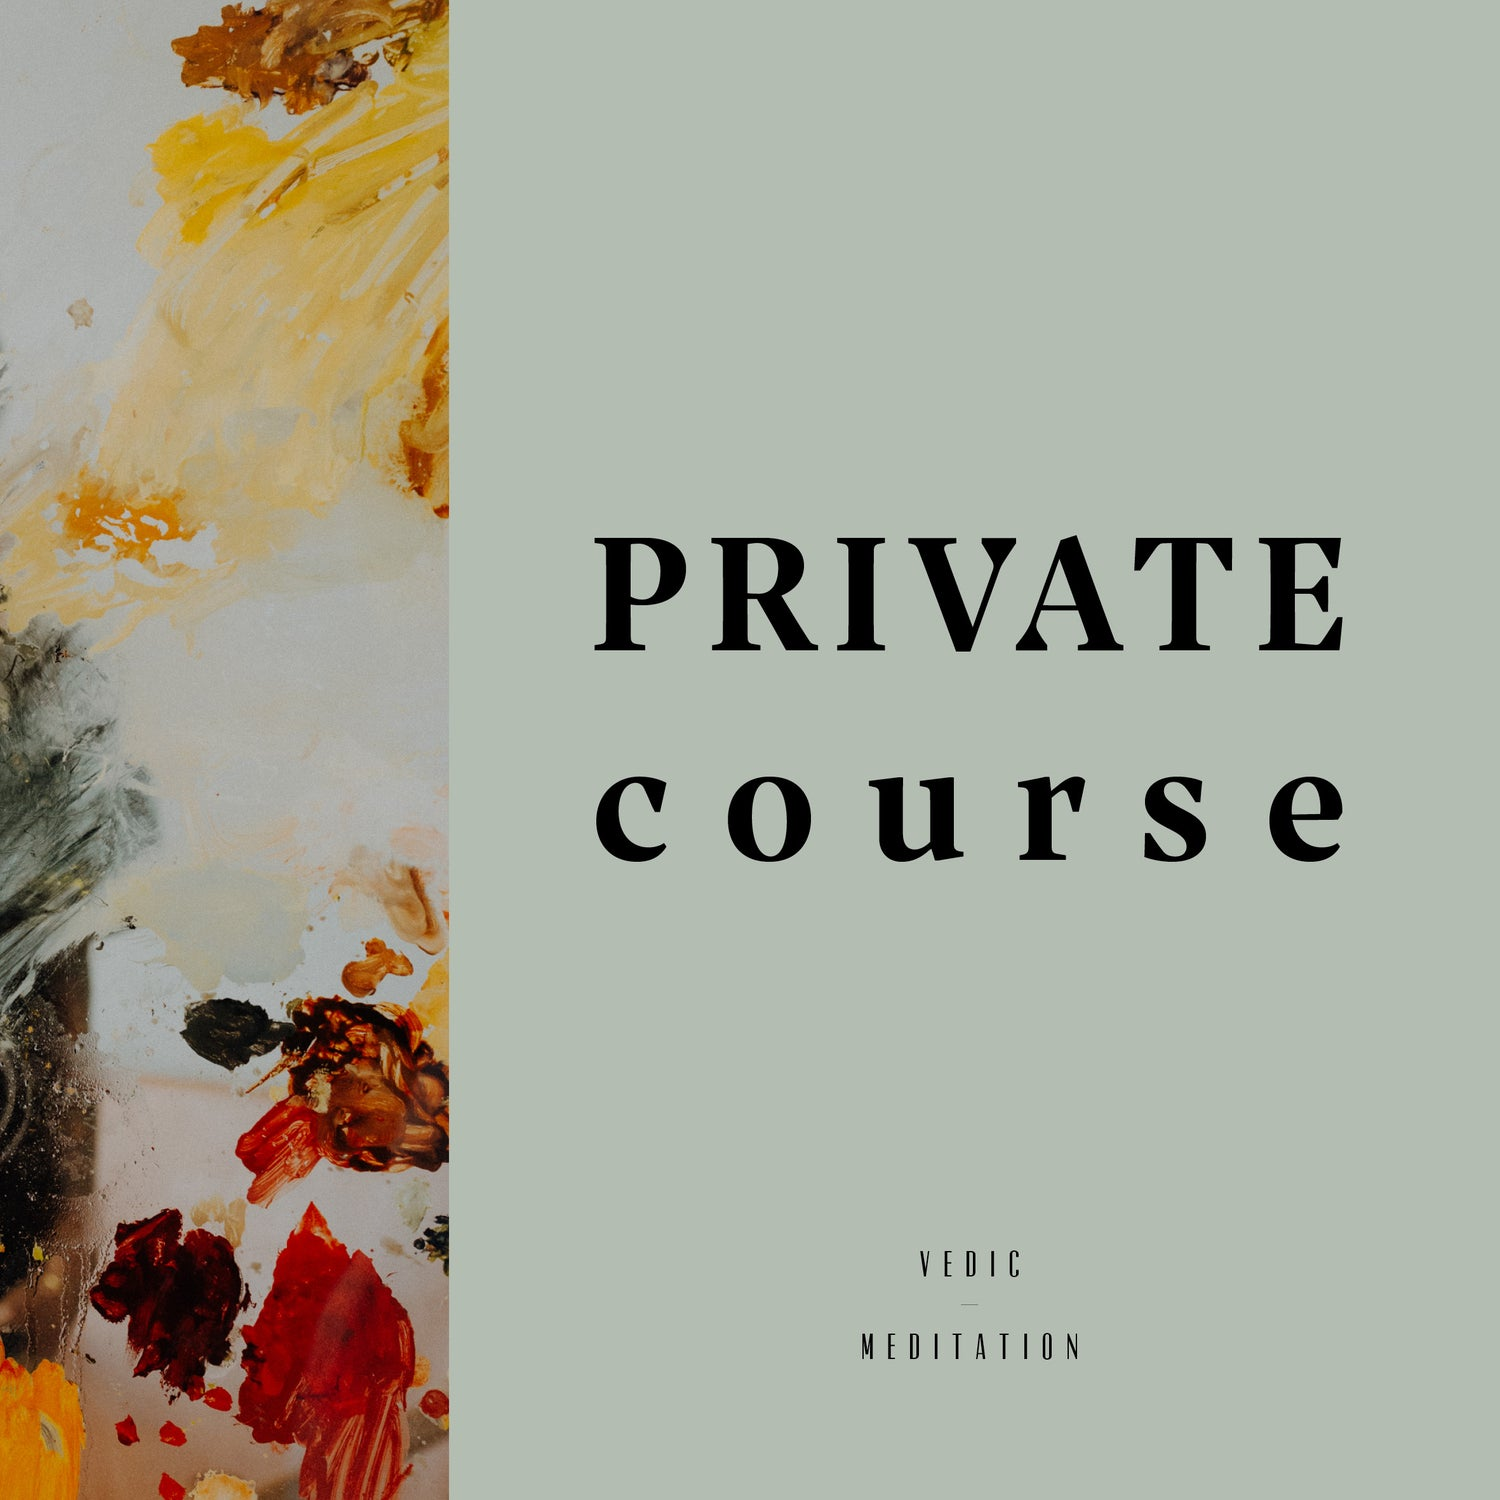 Image of PRIVATE COURSE